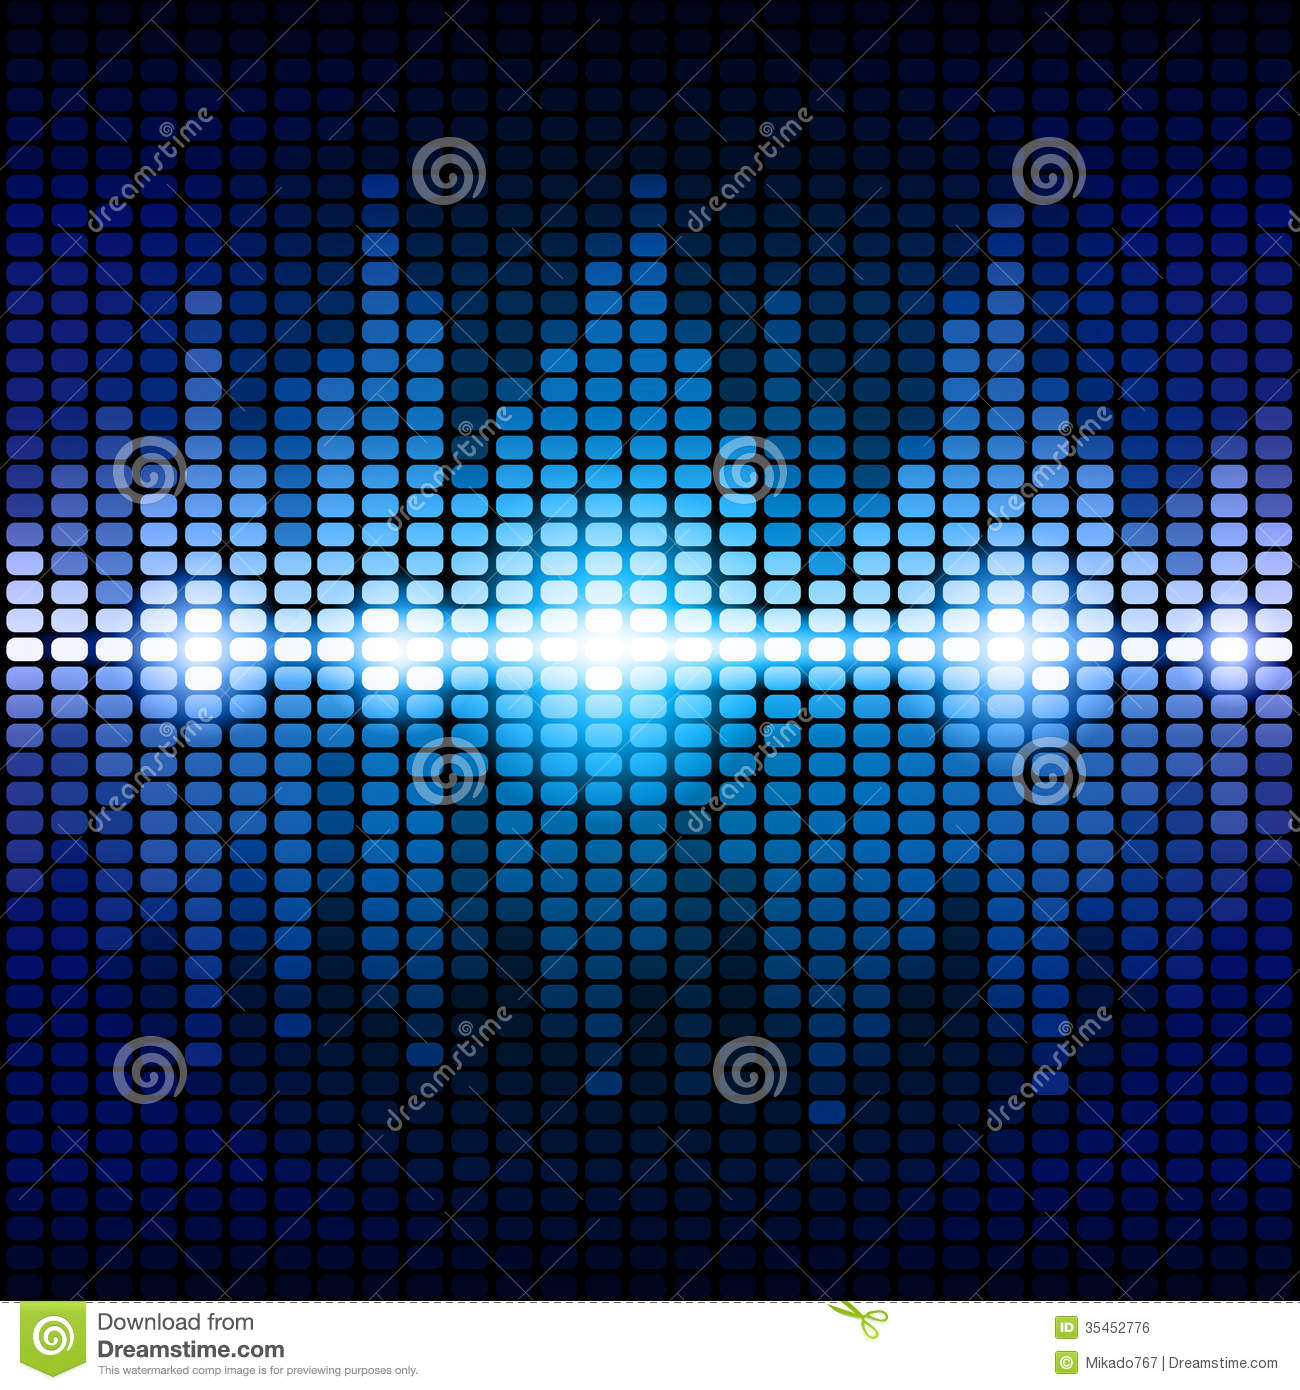 Blue And Purple Digital Equalizer Background Royalty Free ...